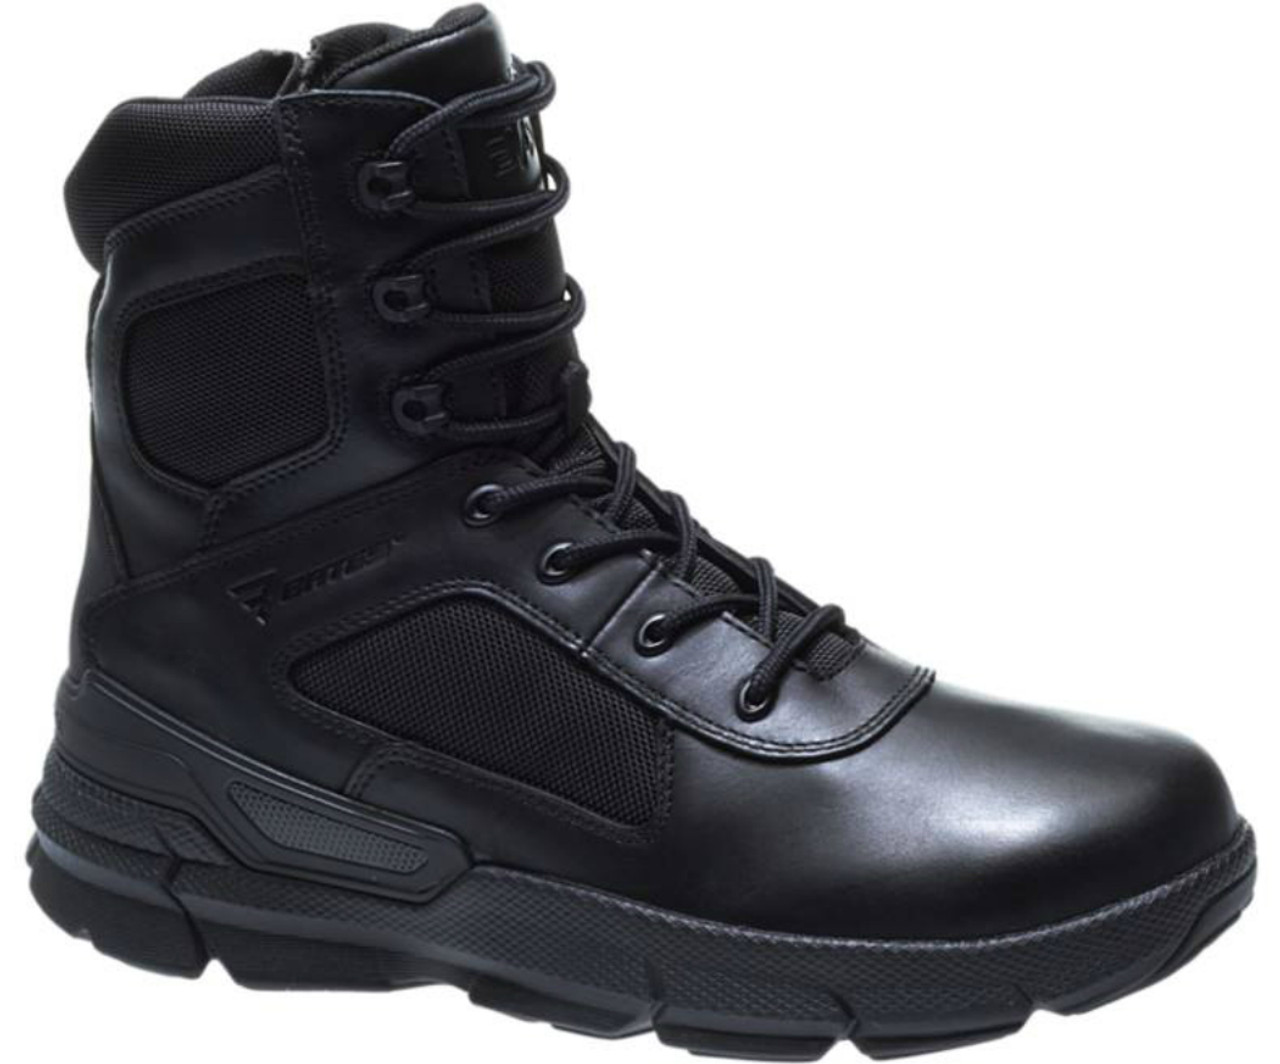 low priced 53c9c 933f9 Bates 7110 Mens Rage Waterproof Side Zip Tactical Boot